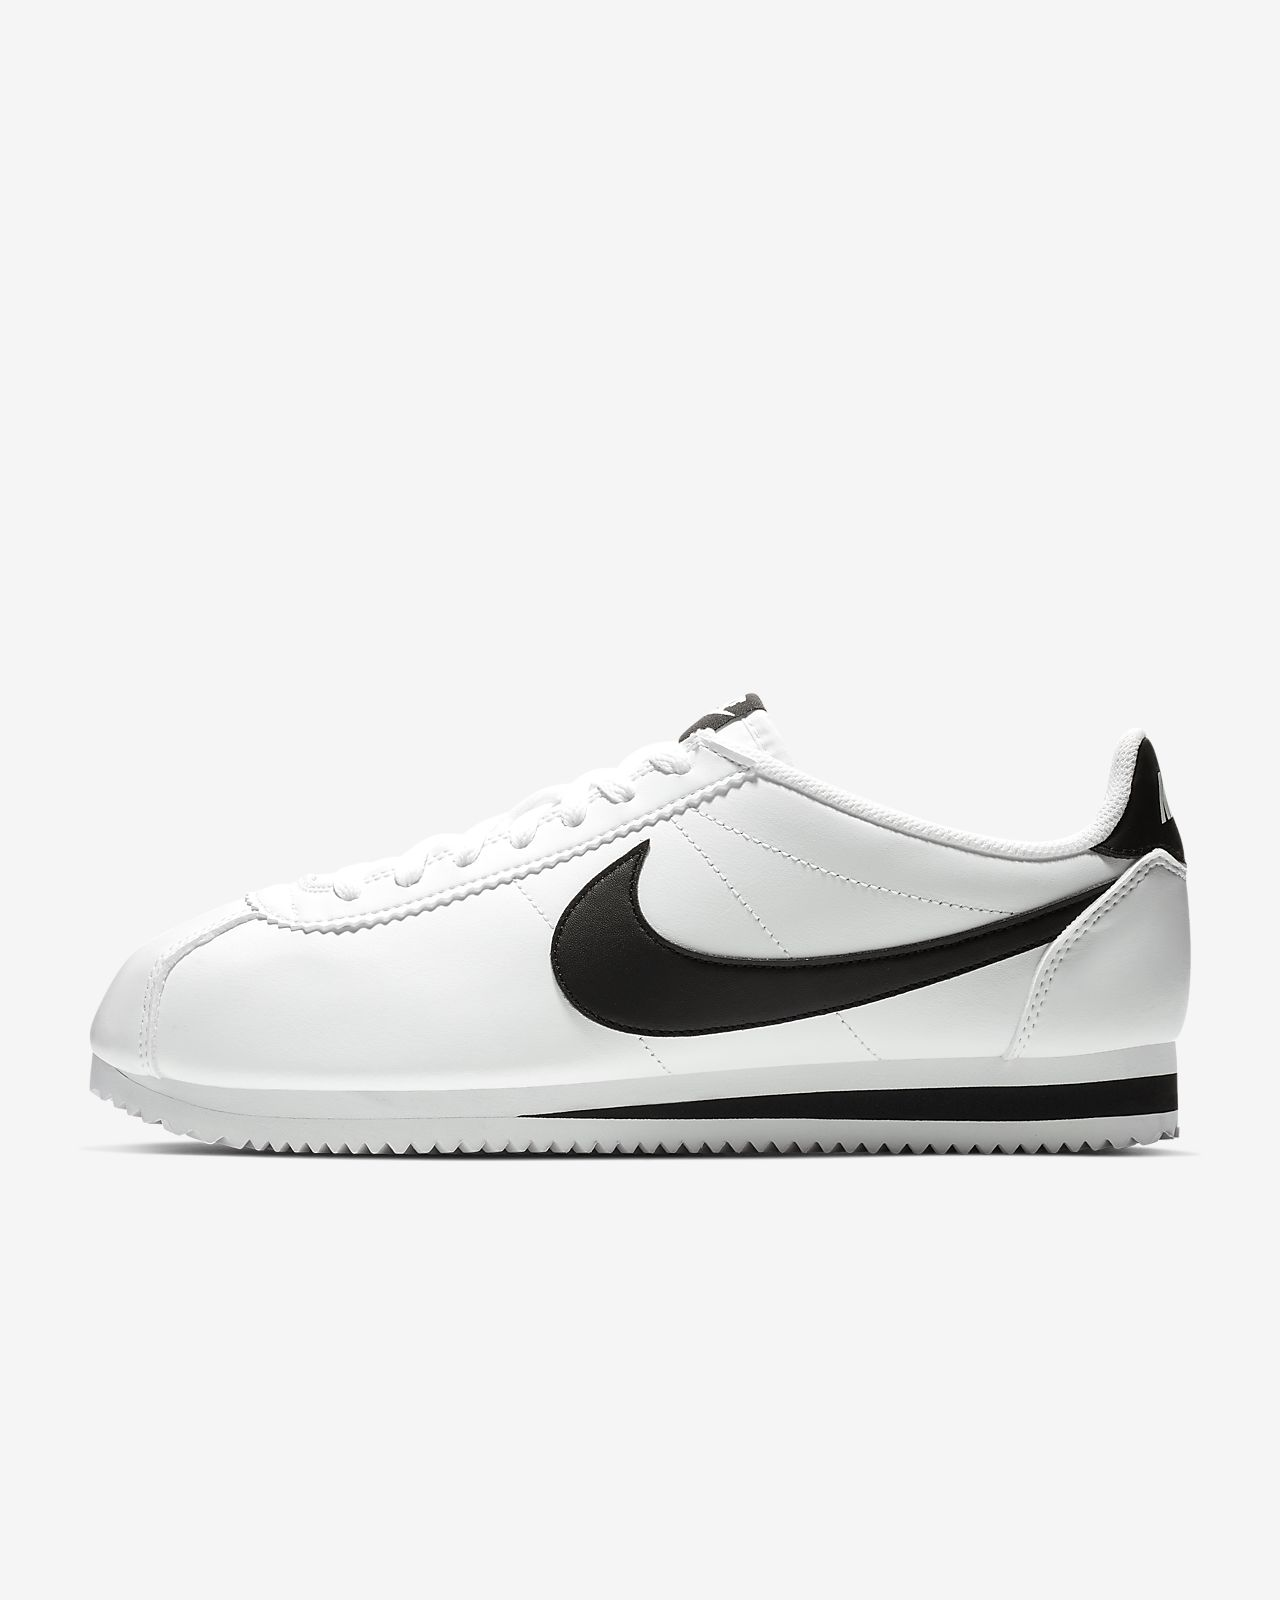 Nike Classic Cortez Nylon Blue White Red Shoes